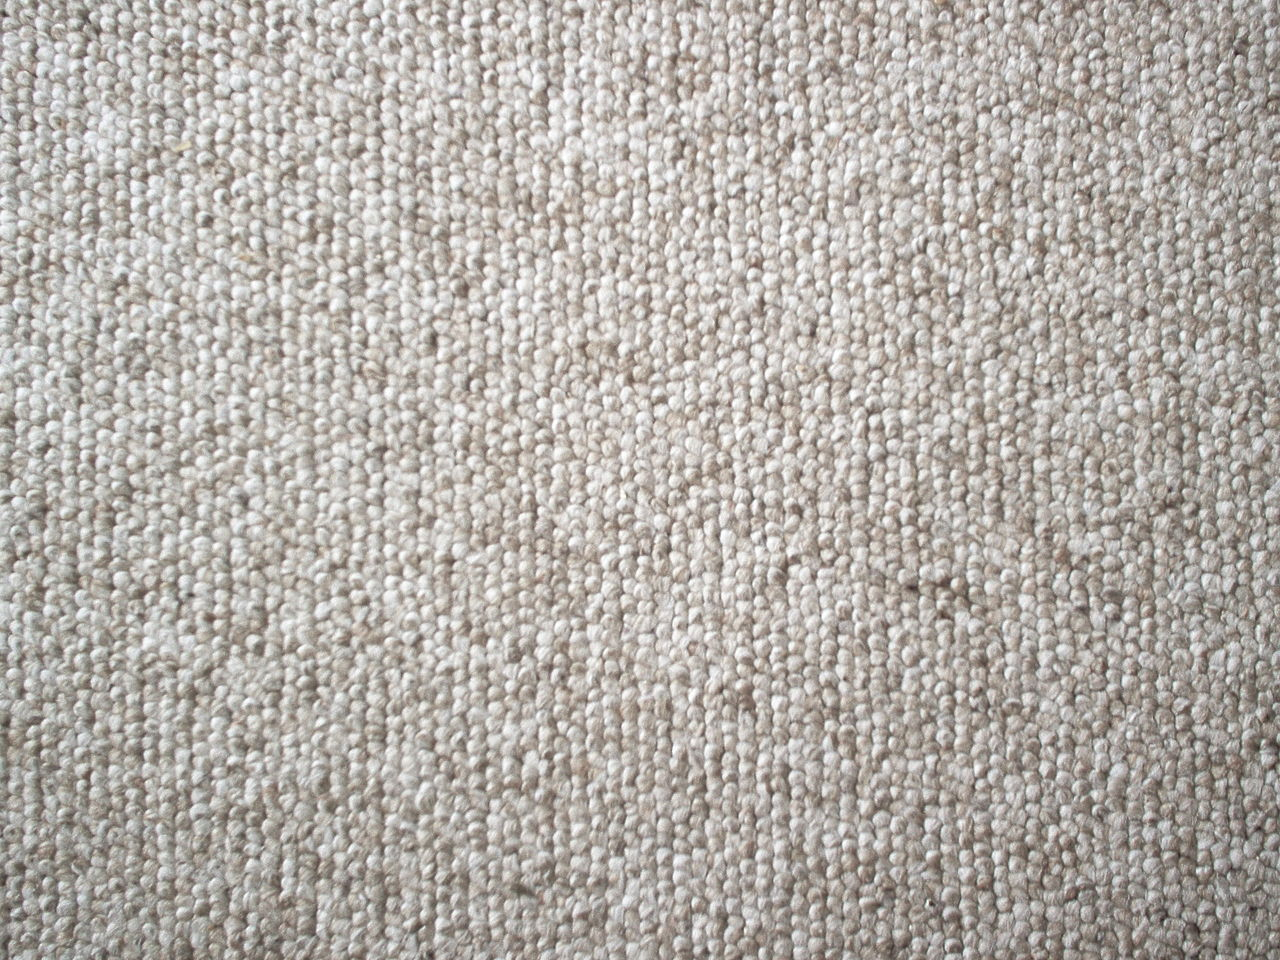 Carpets Are Floor Covered Portals Leading Throughout Office Buildings. They  Are The Protectors Of Floor Surfaces; Thus, Making It The Object Thatu0027s ...